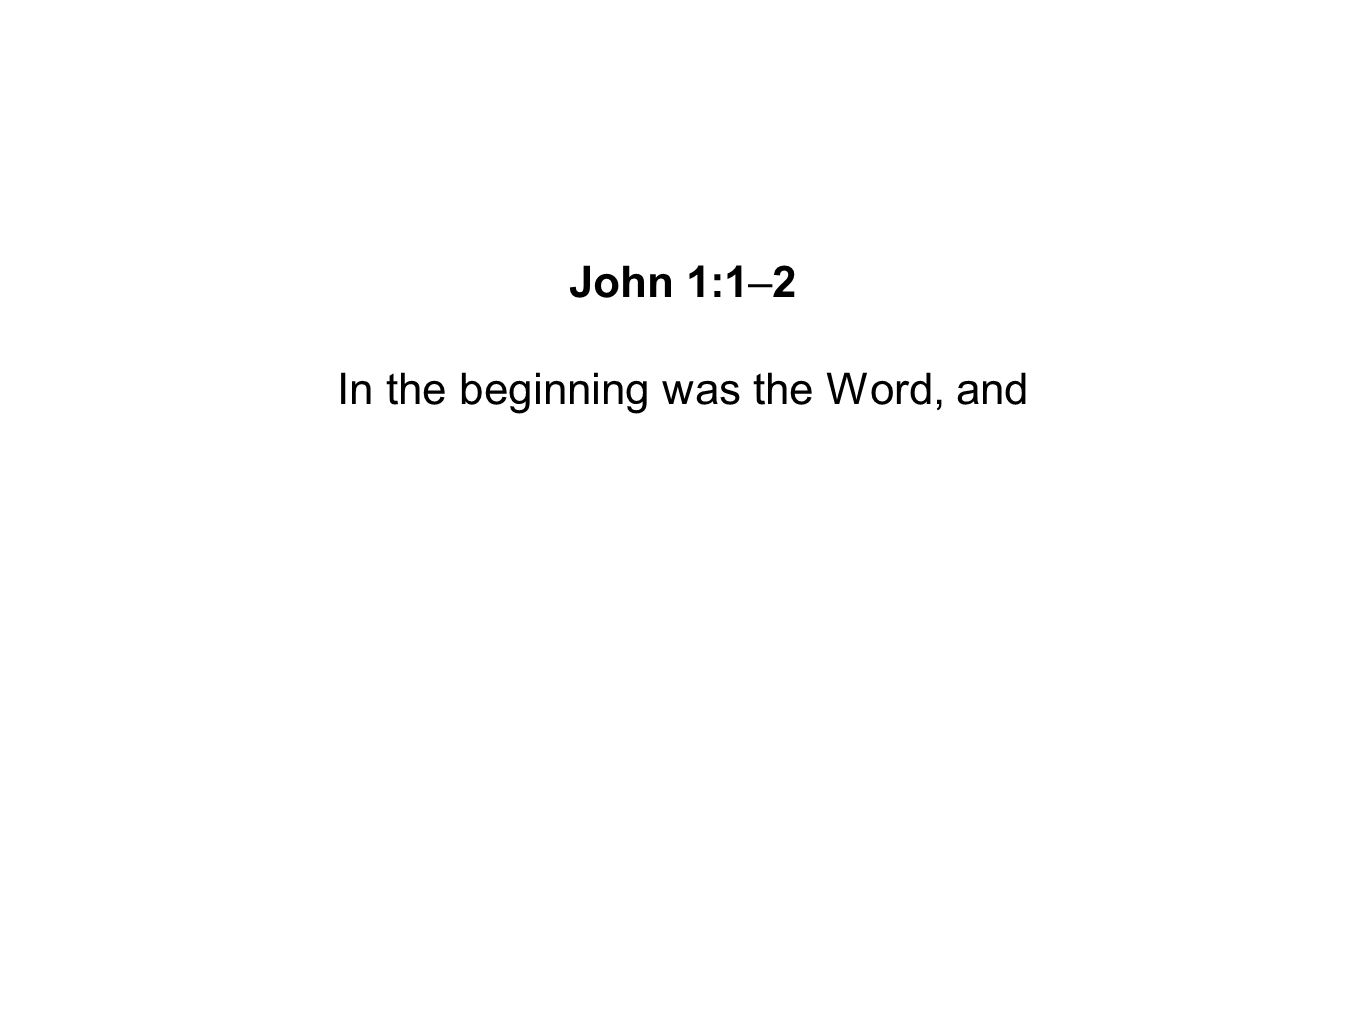 In the beginning was the Word, and